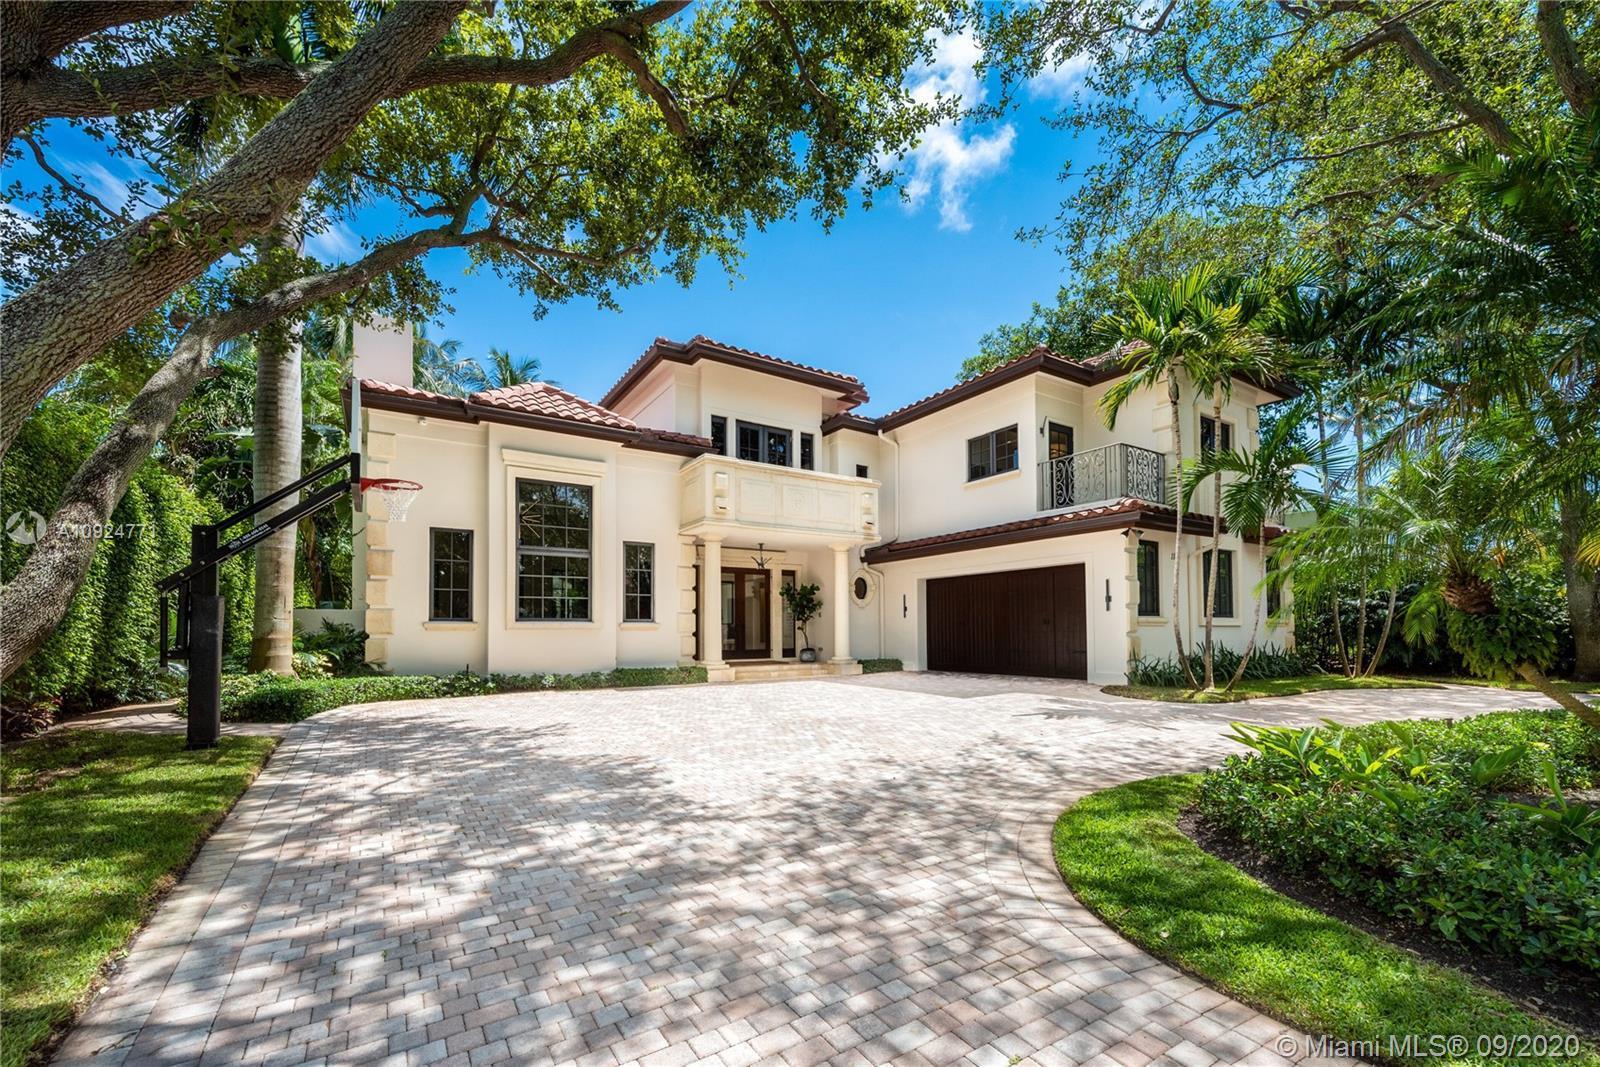 Exquisite home in private and guard-gated Bal Harbour Village, remodeled to perfection and available